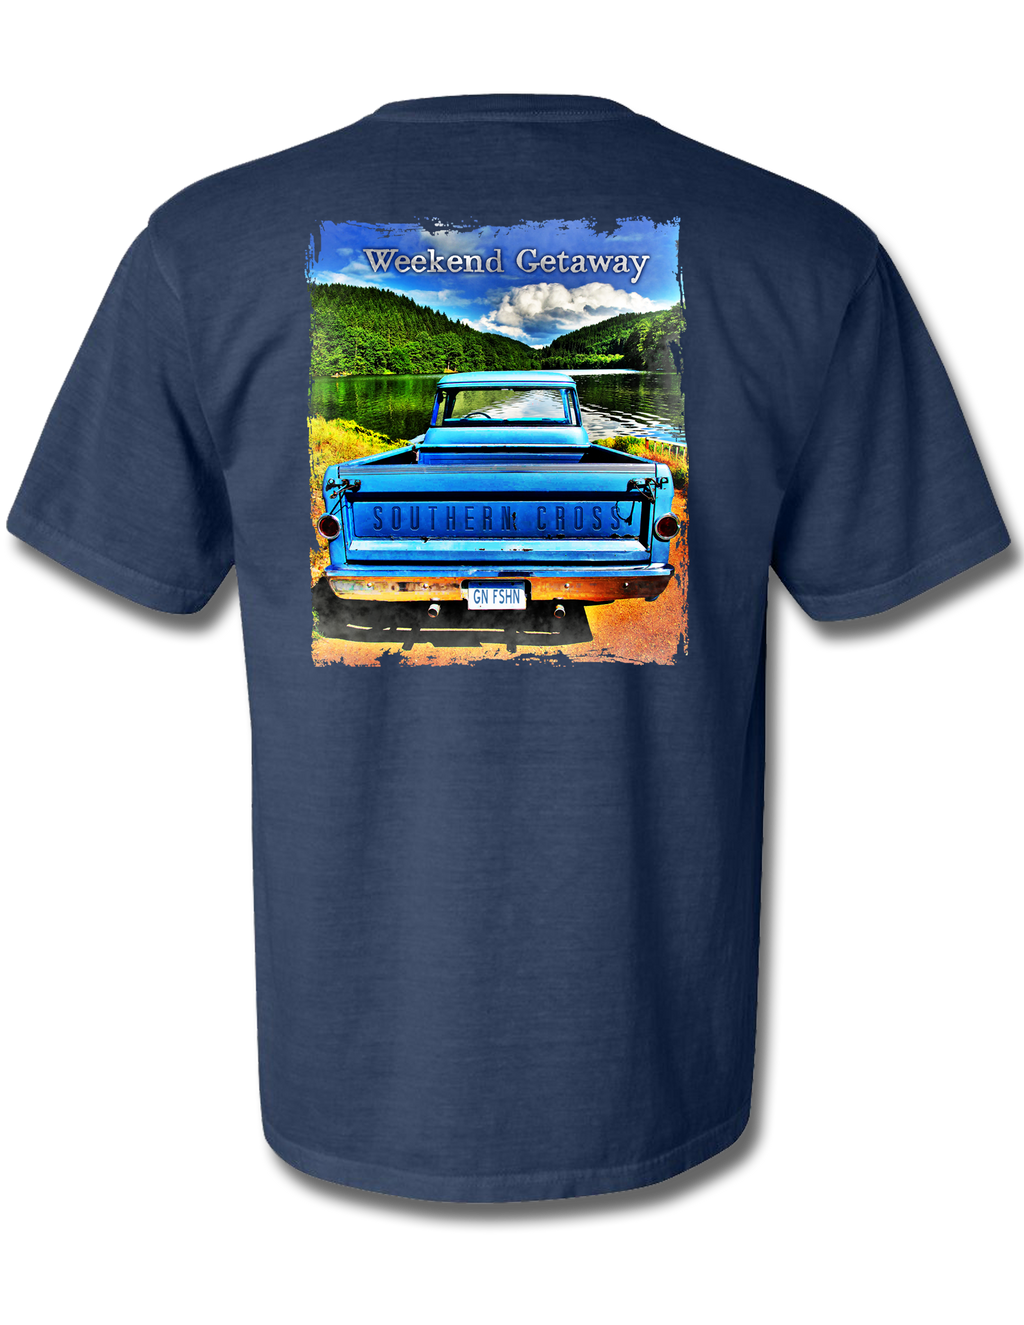 Weekend Getaway, T-Shirts - Southern Cross Apparel